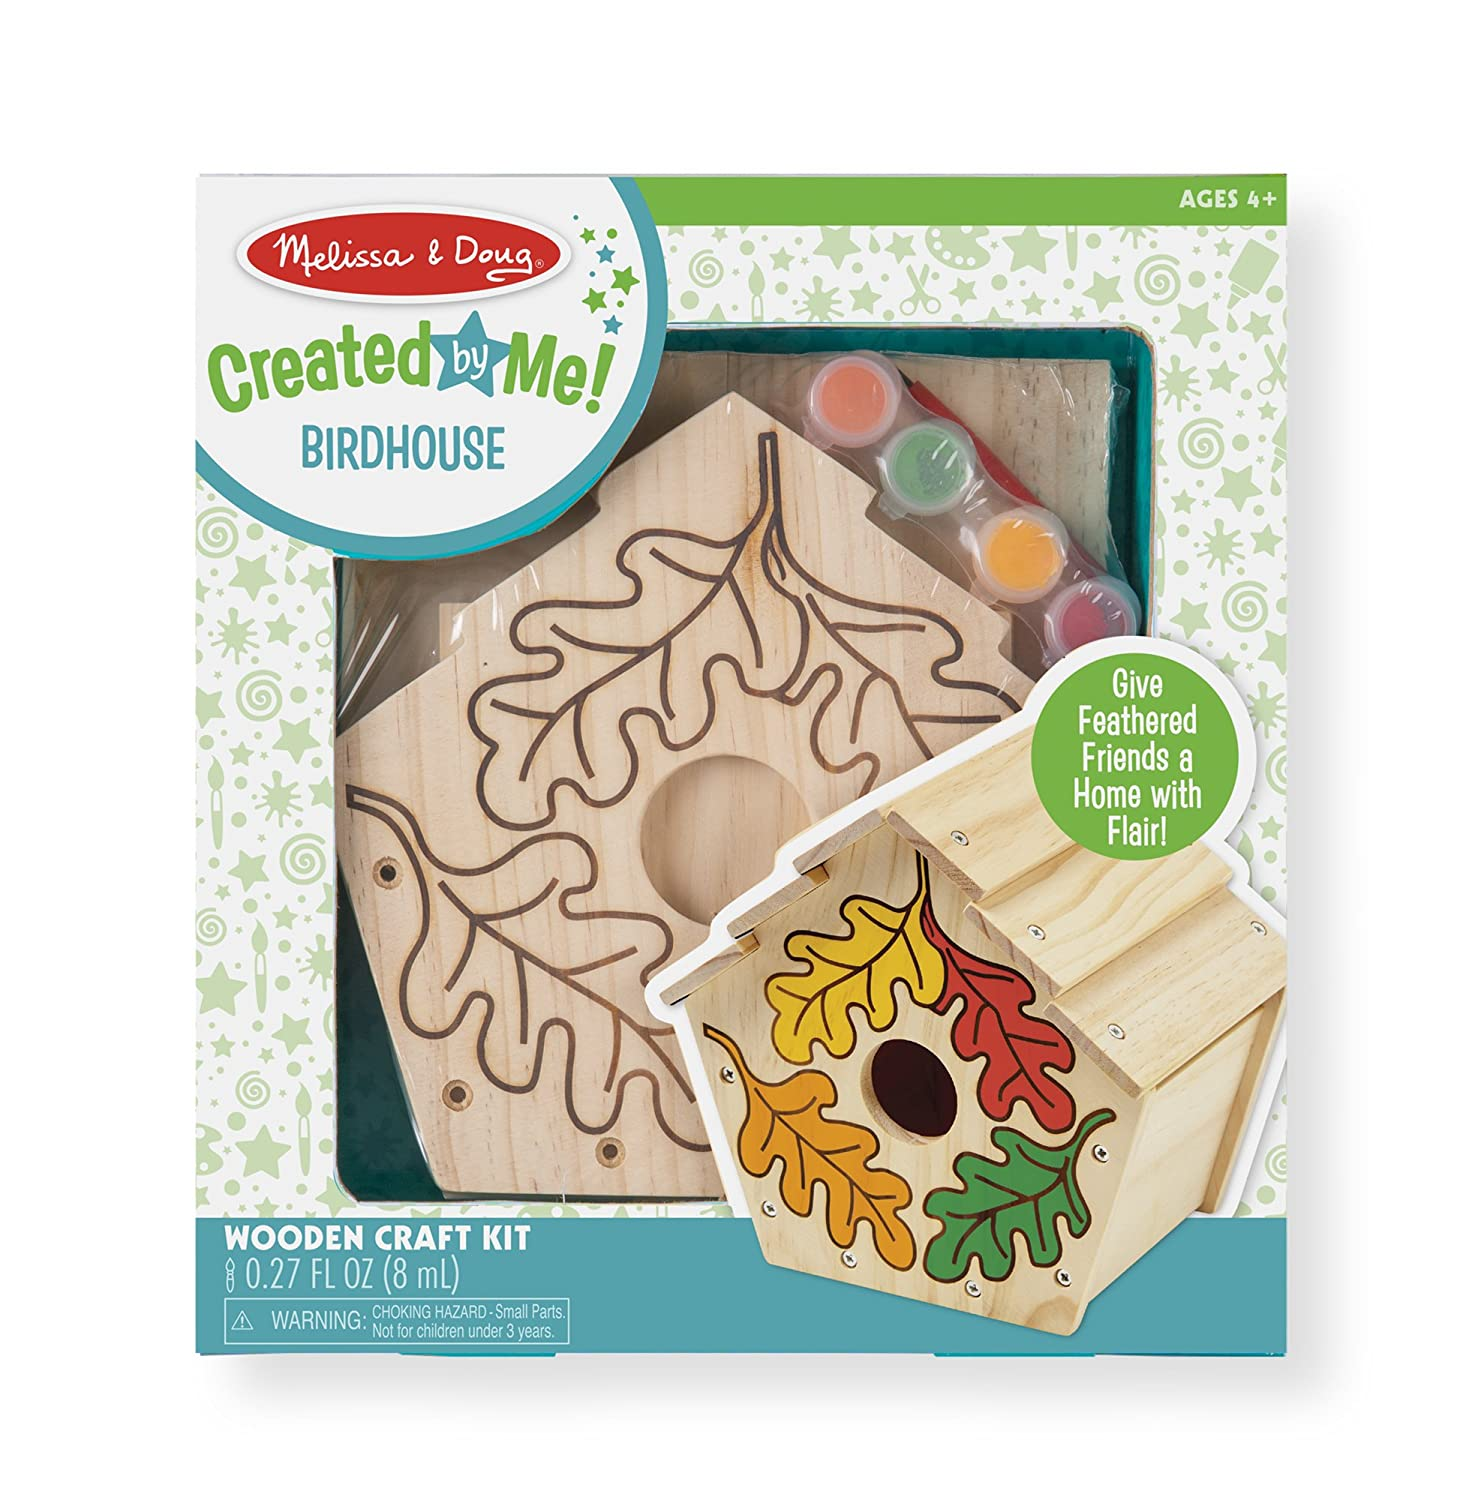 Melissa & Doug Build-Your-Own Wooden Birdhouse Craft Kit 3101